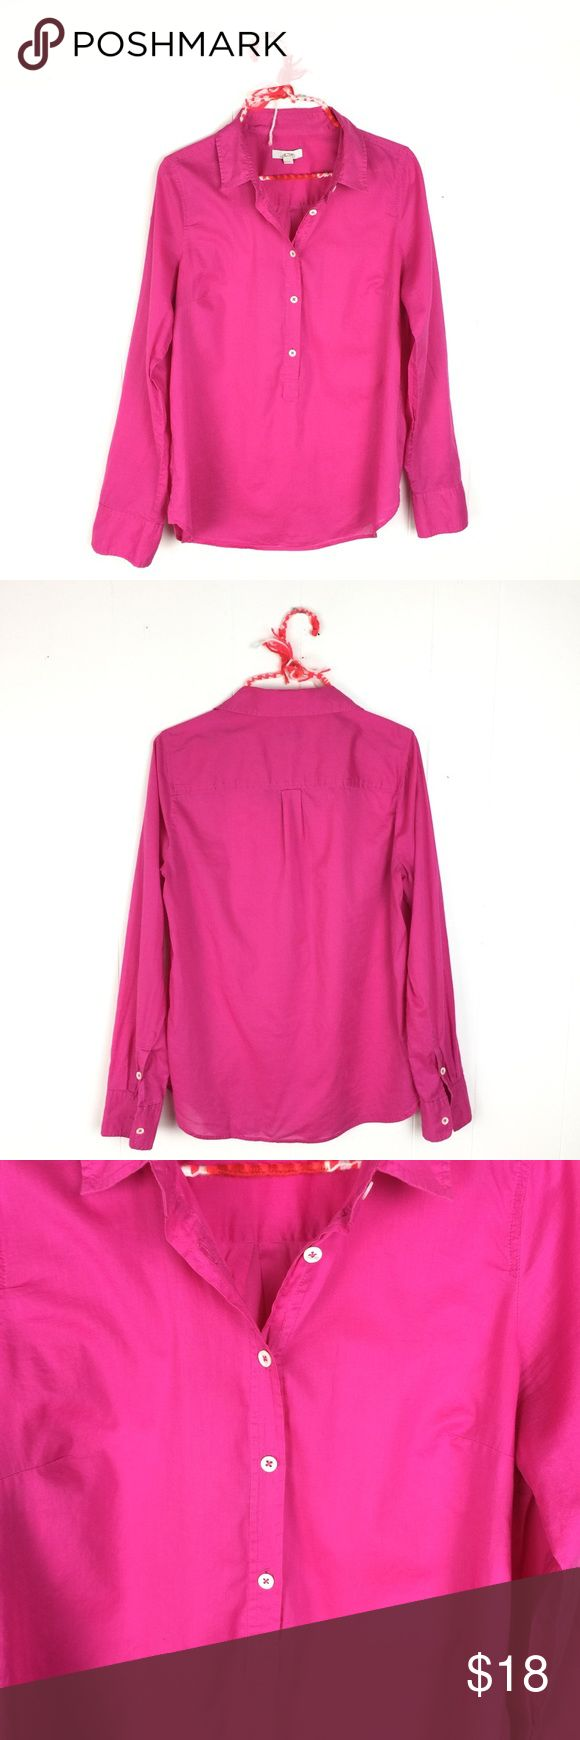 "J. Crew Hot Pink Lightweight Popover Shirt // 10 Fantastic J. Crew Hot pink Popover Shirt. Lightweight. No fiber tag - feels like cotton. Very good condition. Size 10. 26"" shoulder to bottom. 20 1/2"" underarm to underarm. J. Crew Tops Blouses"